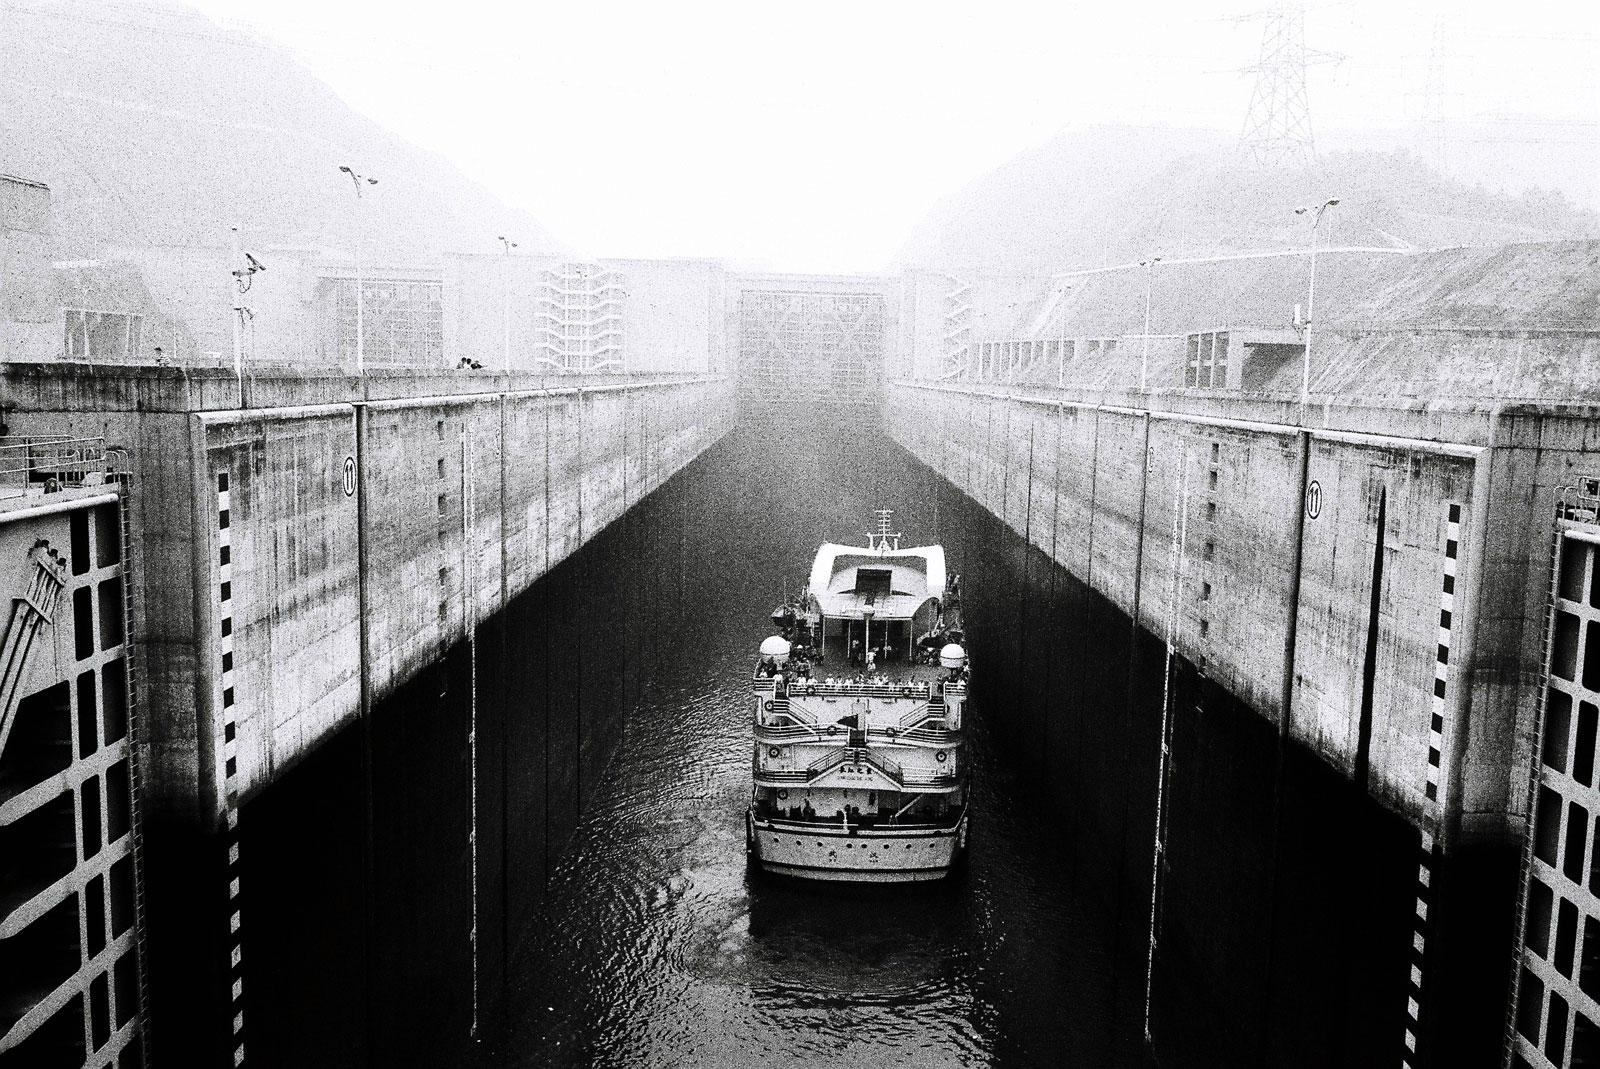 Black & white three gorges dam